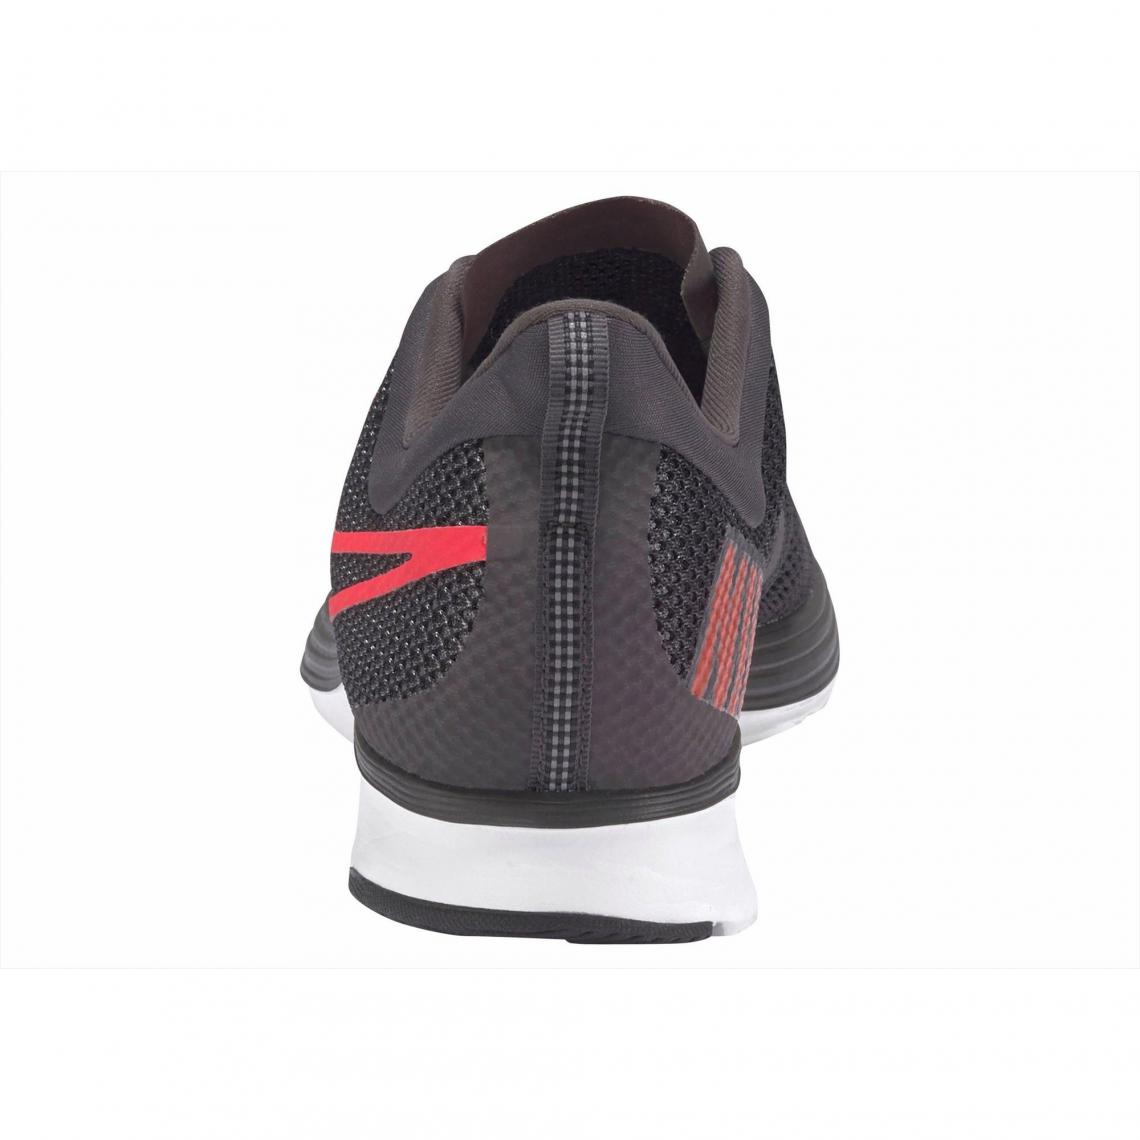 new style 8b41c 3a766 Baskettes de running NIKE Zoom Strike pour homme - Gris Anthracite - Orange  Nike